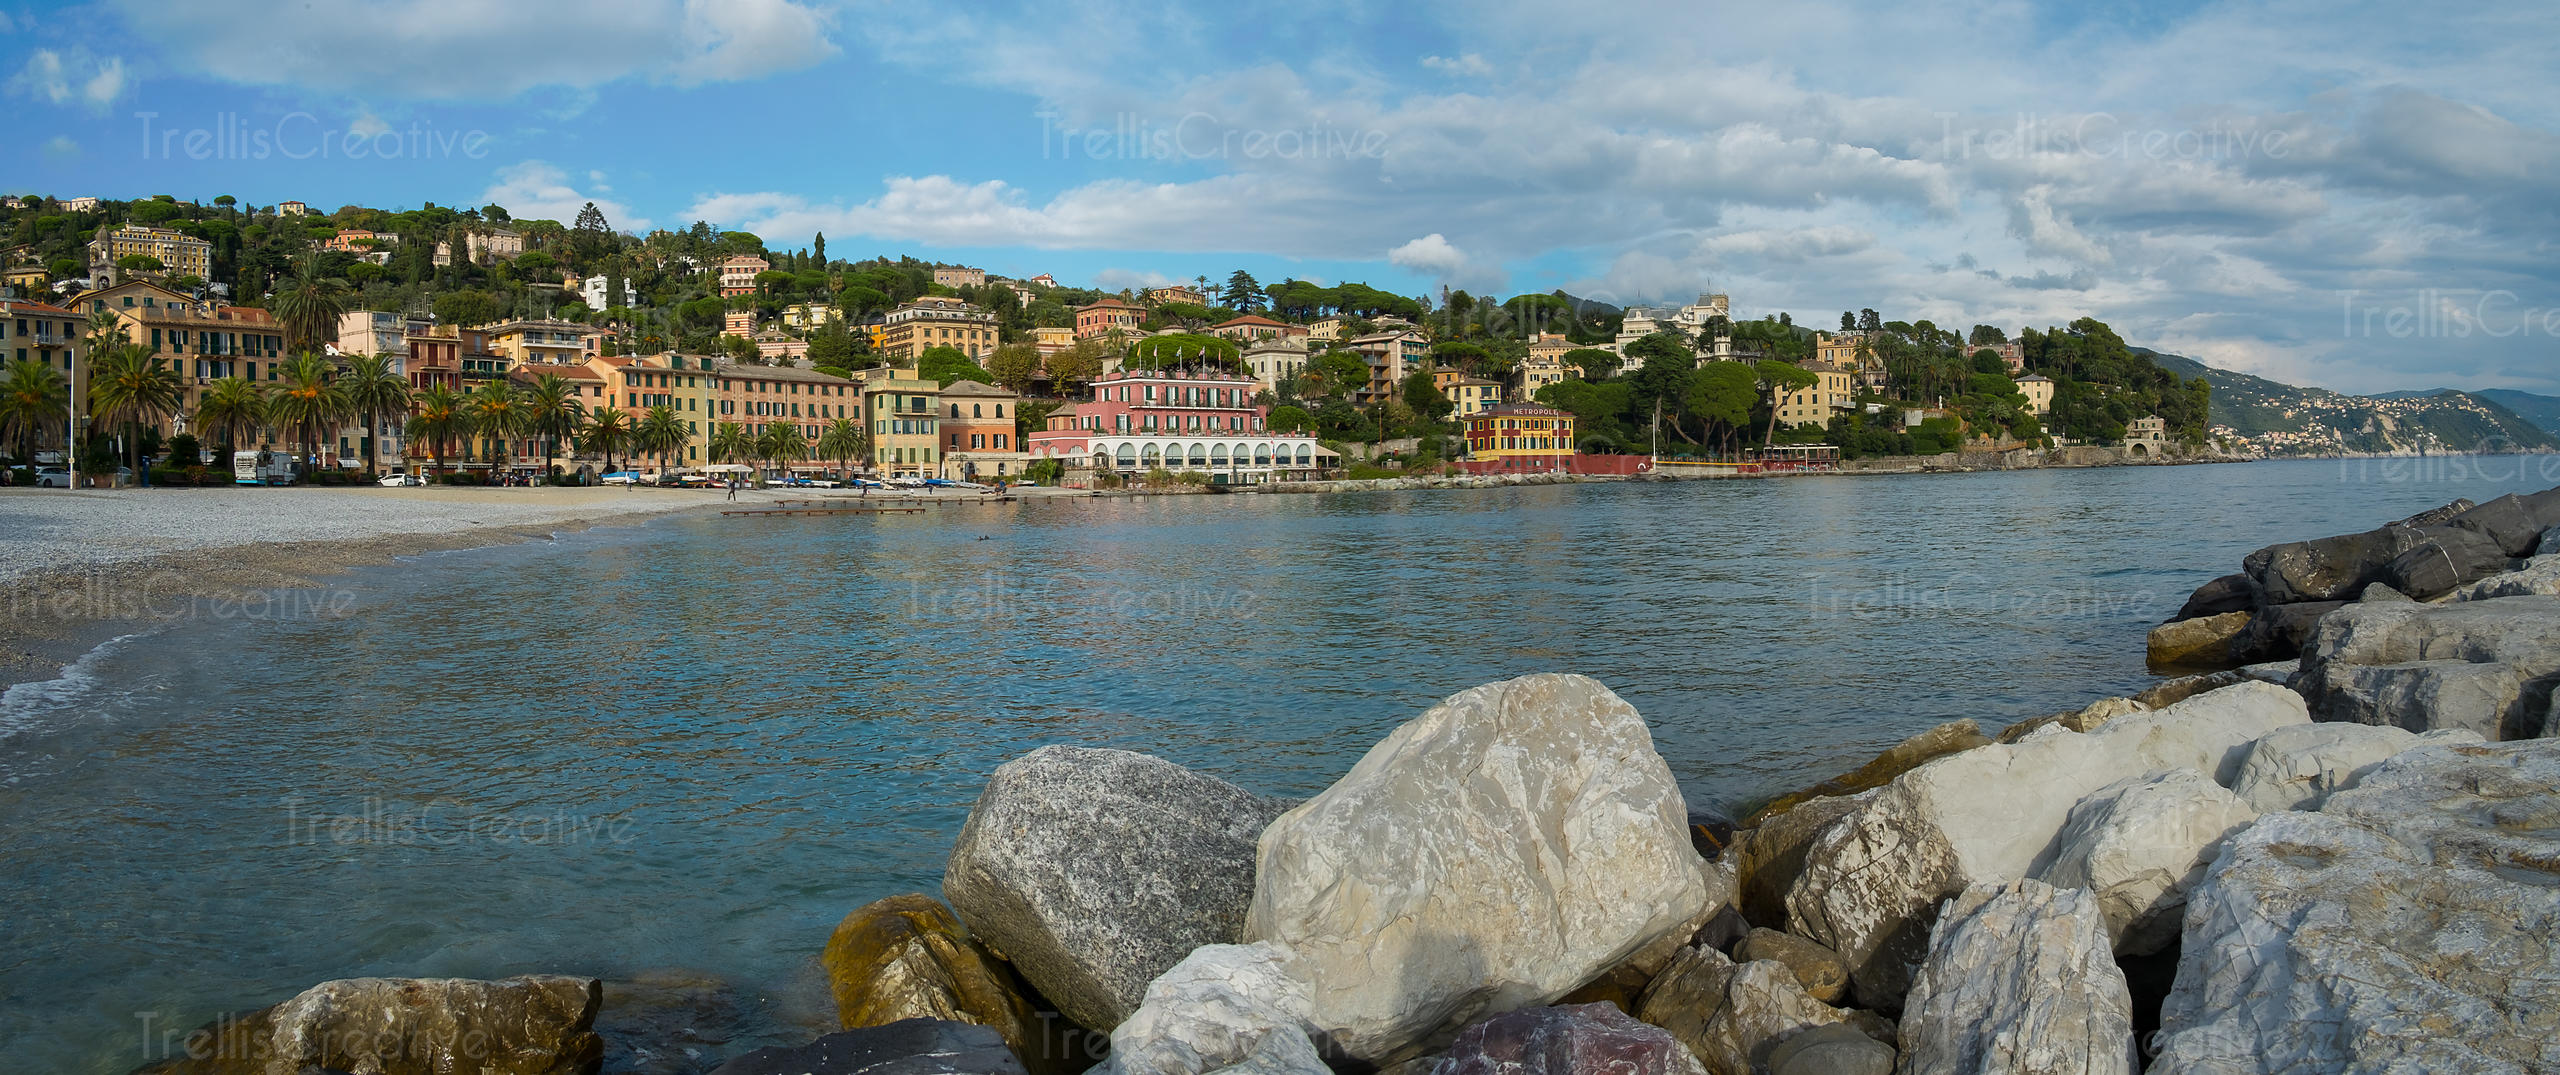 Seaside of Santa Margherita Ligure, famous small town in Liguria